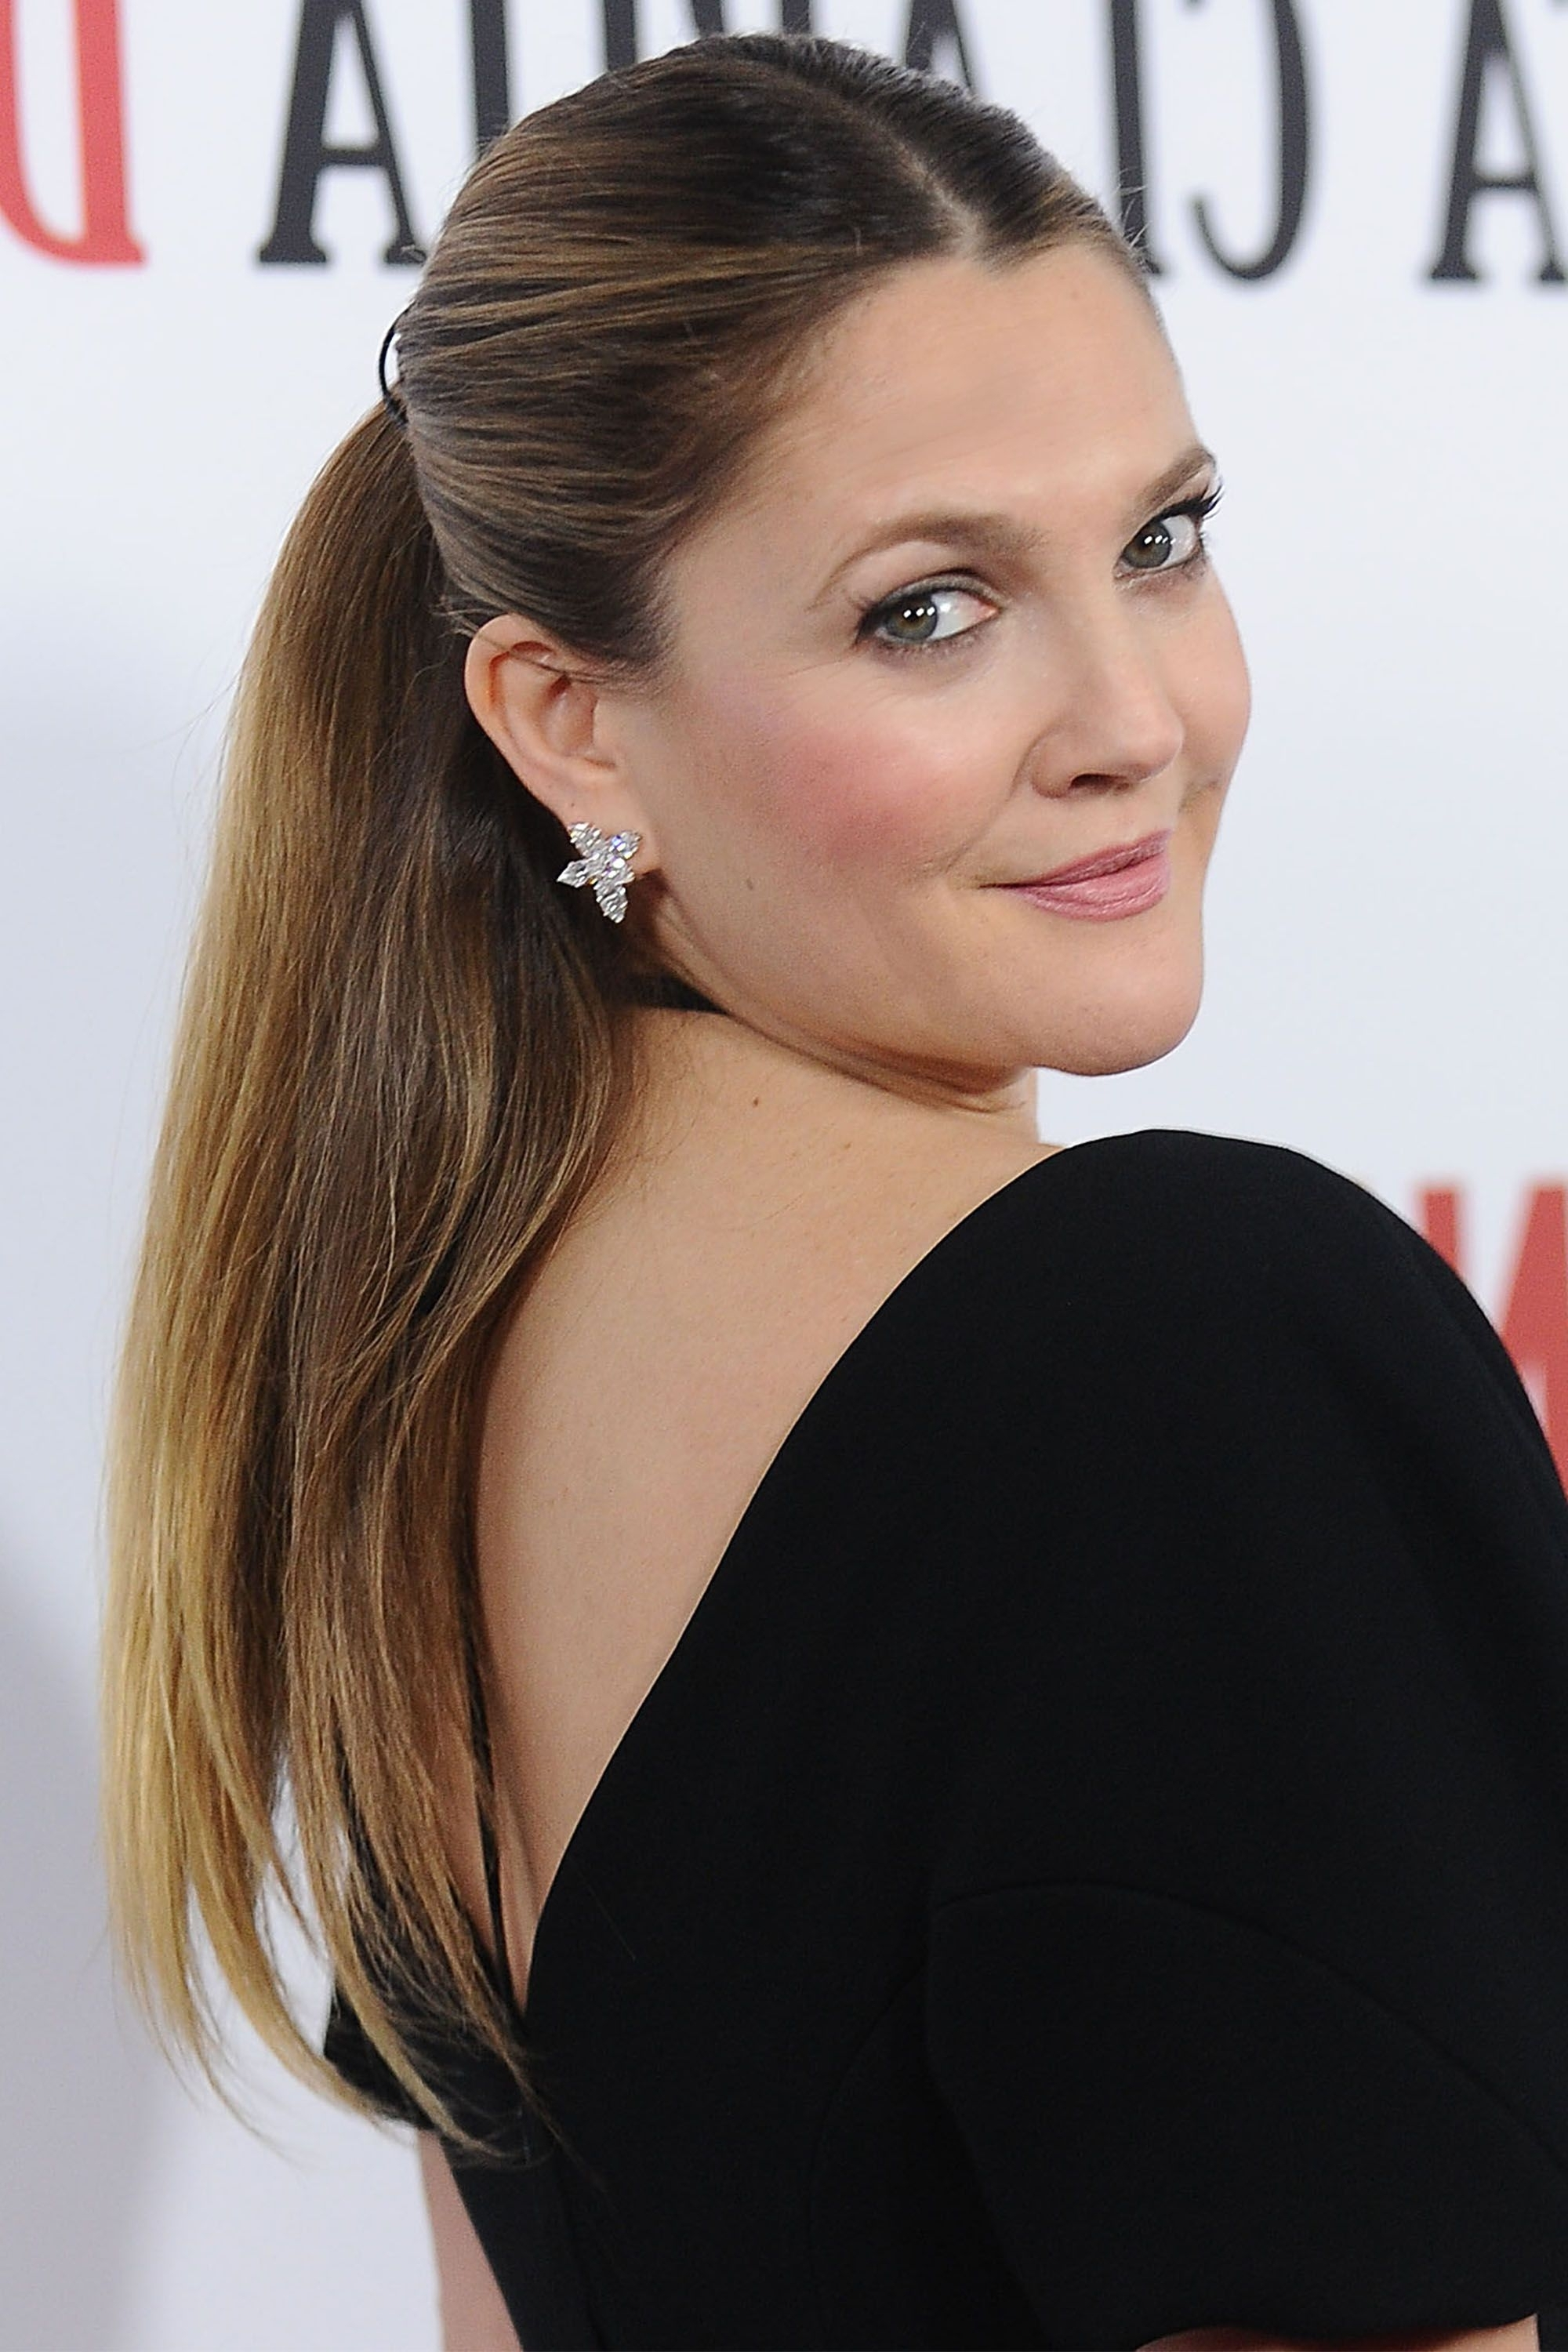 20 New Ways To Wear A Ponytail – Best Celebrity Ponytails Of 2017 In Trendy Poofy Pony Hairstyles With Face Framing Strands (View 9 of 20)